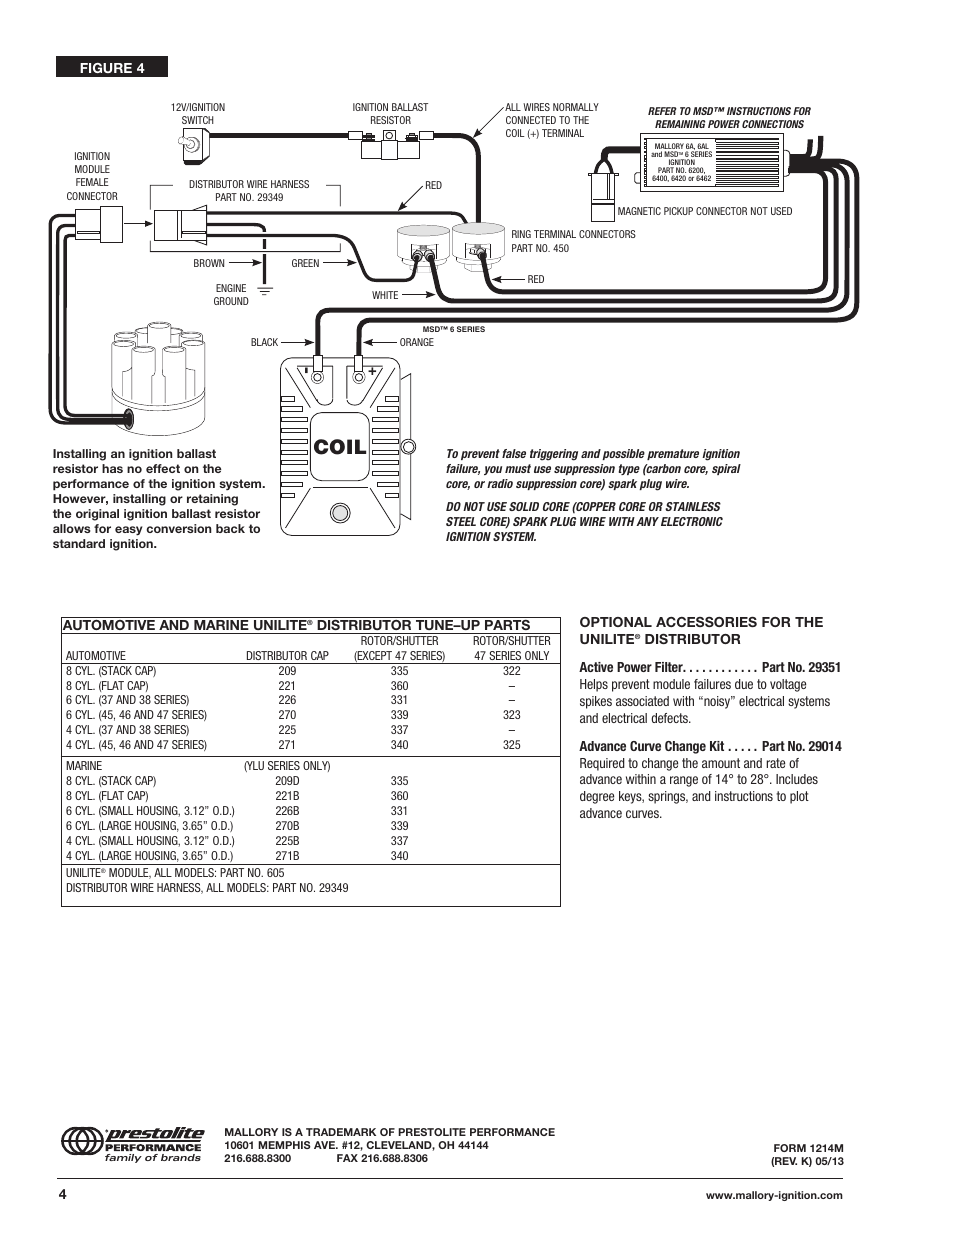 charming mallory 9000 wiring diagram images best image wiring mallory unilite wiring-diagram mallory comp 9000 wiring diagram with msd 6al image album